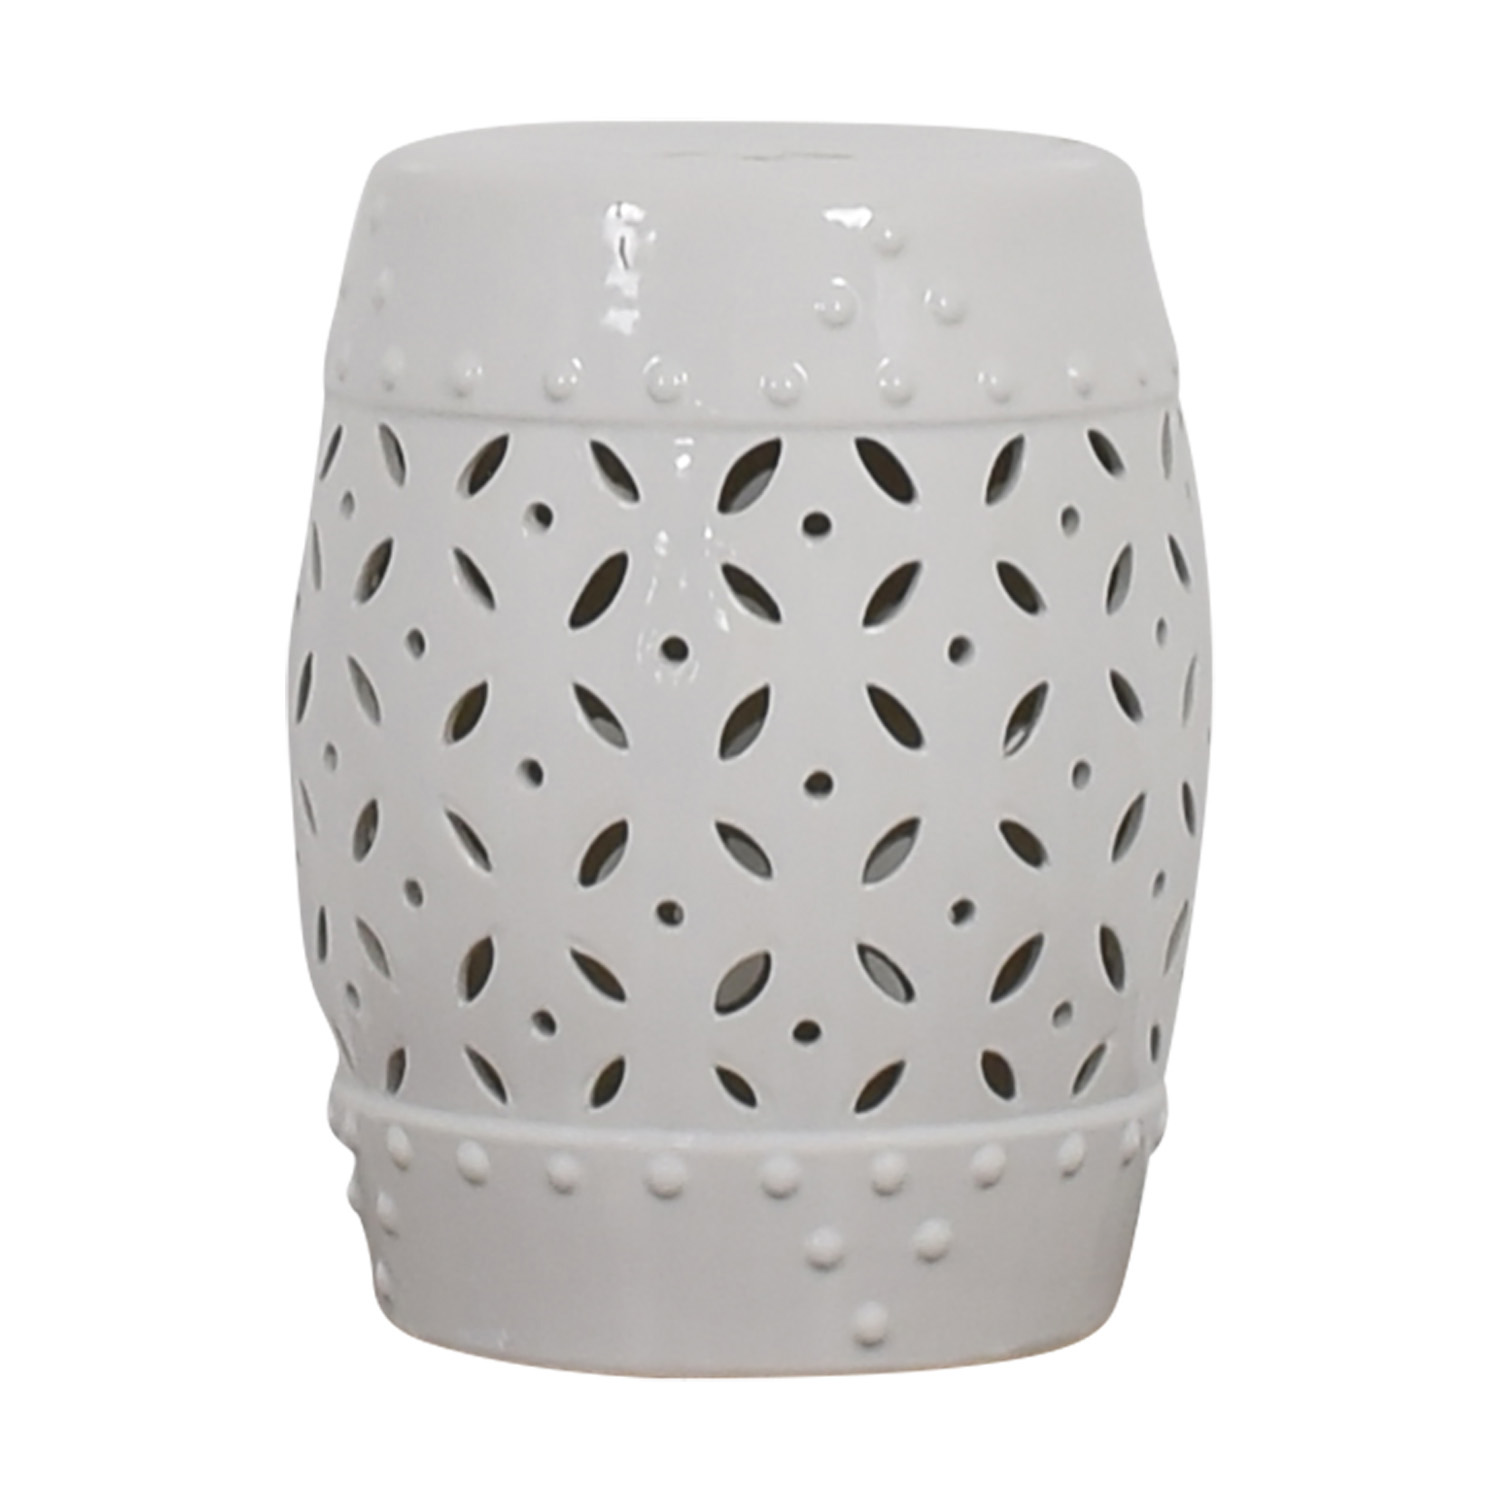 Pier 1 Imports White Drum Accent Table / Accent Tables